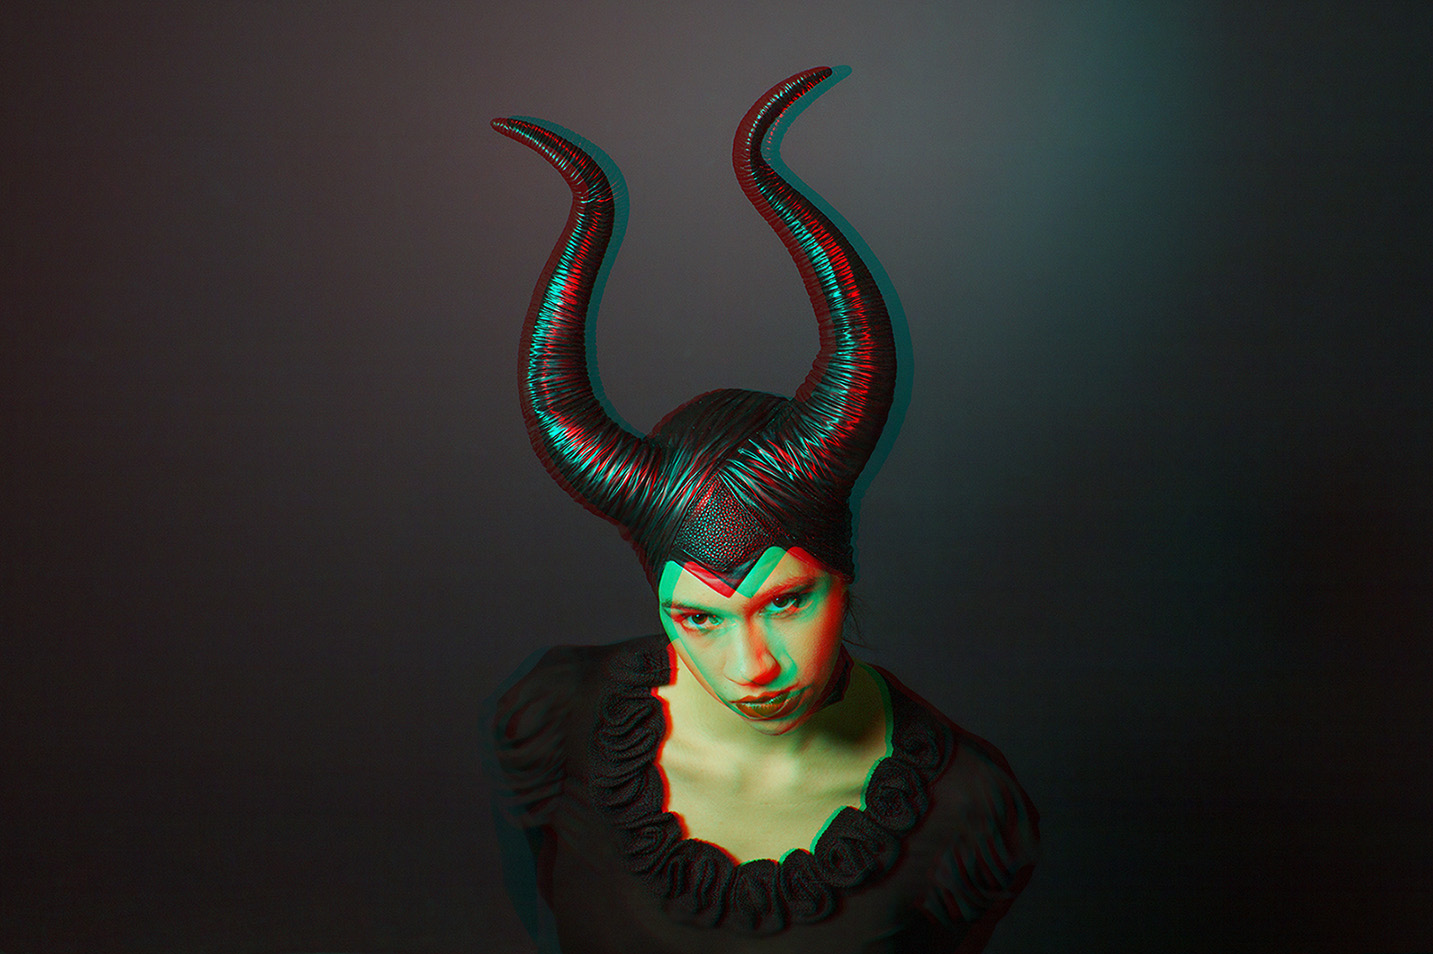 maleficent cosplay 3d sterography anaglyph